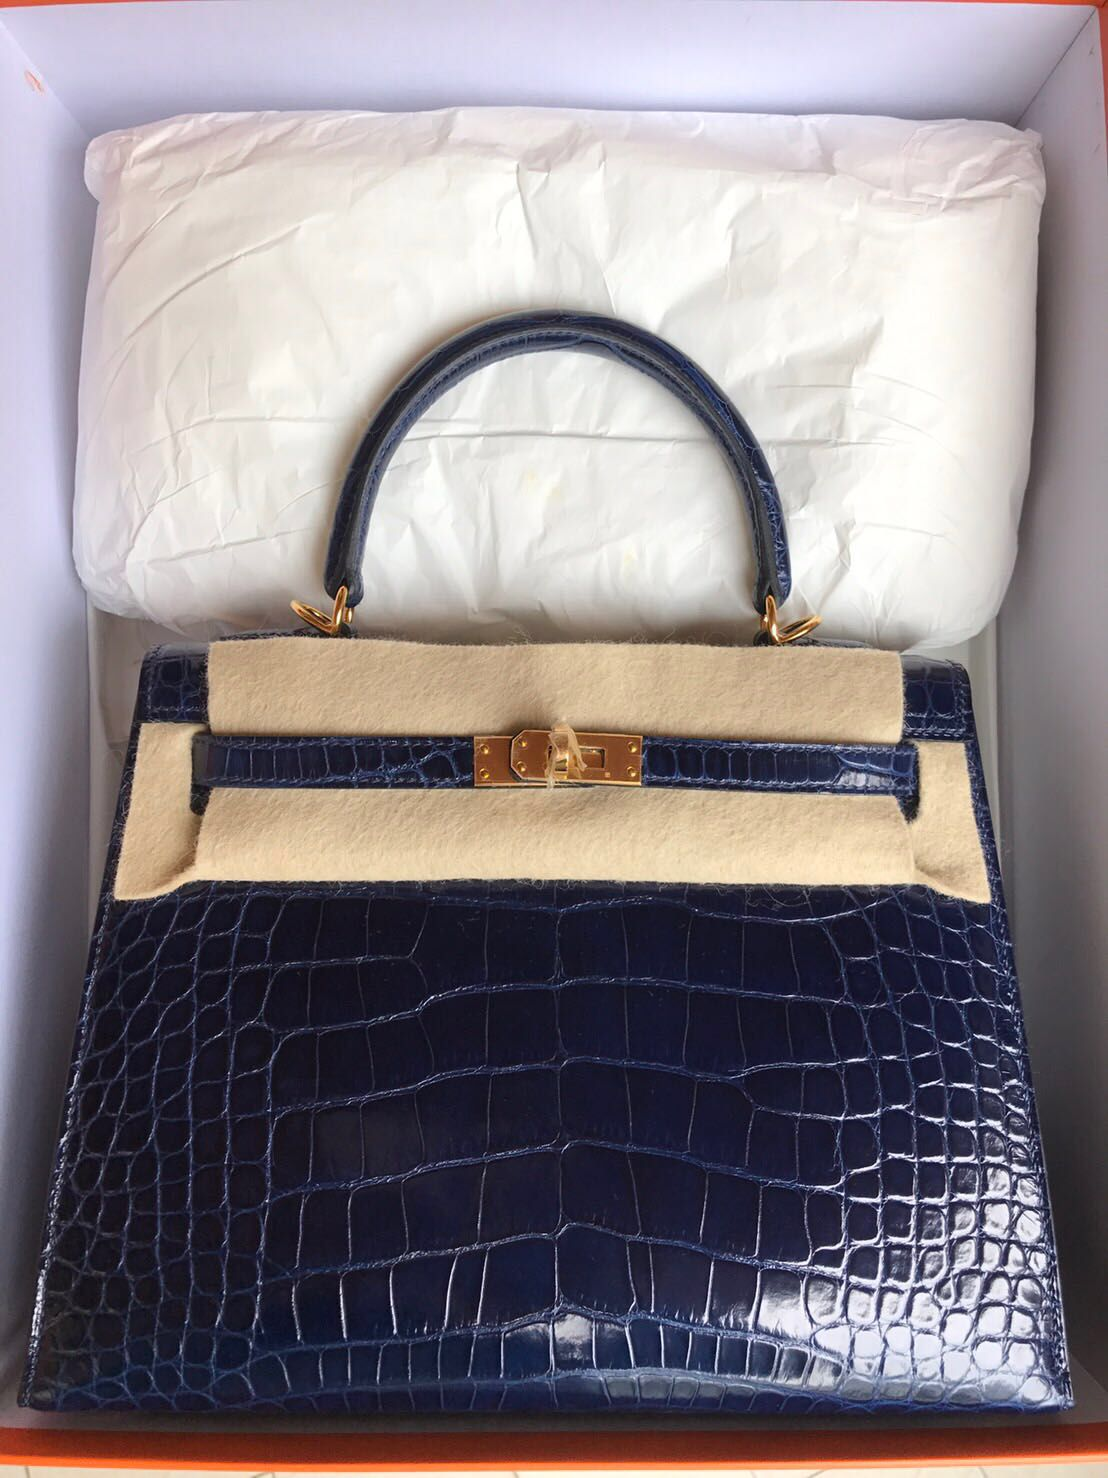 5895d71a050 Hermès Kelly 25 blue sapphire shiny alligator gold Hardware  bags  kelly   hermes  fashion  style  handbags